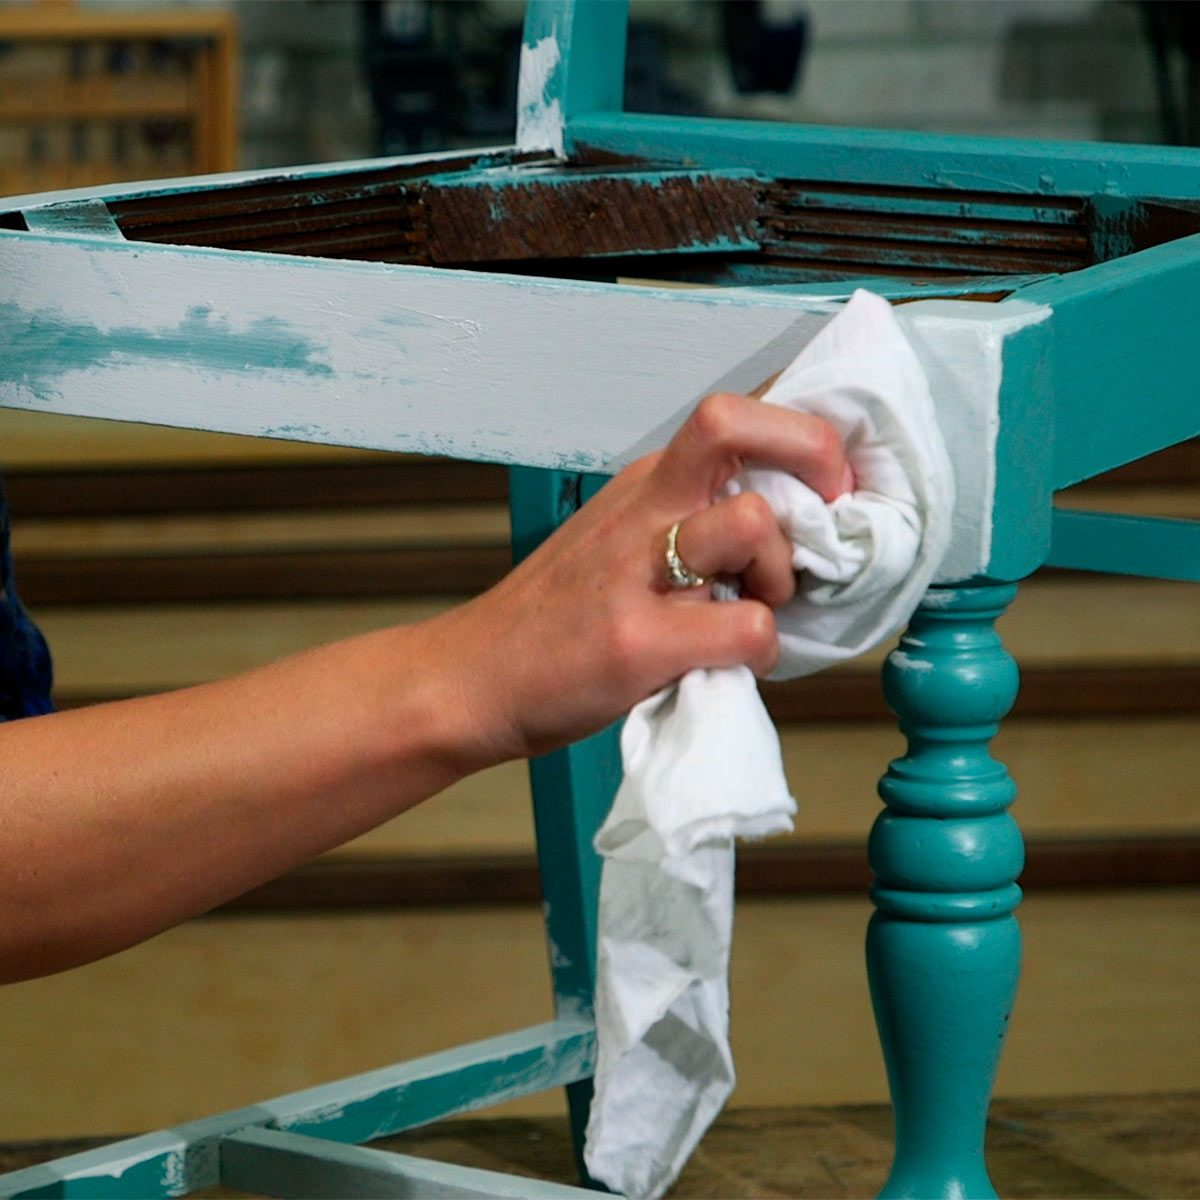 paint second layer on chair and remove some to reveal aged look